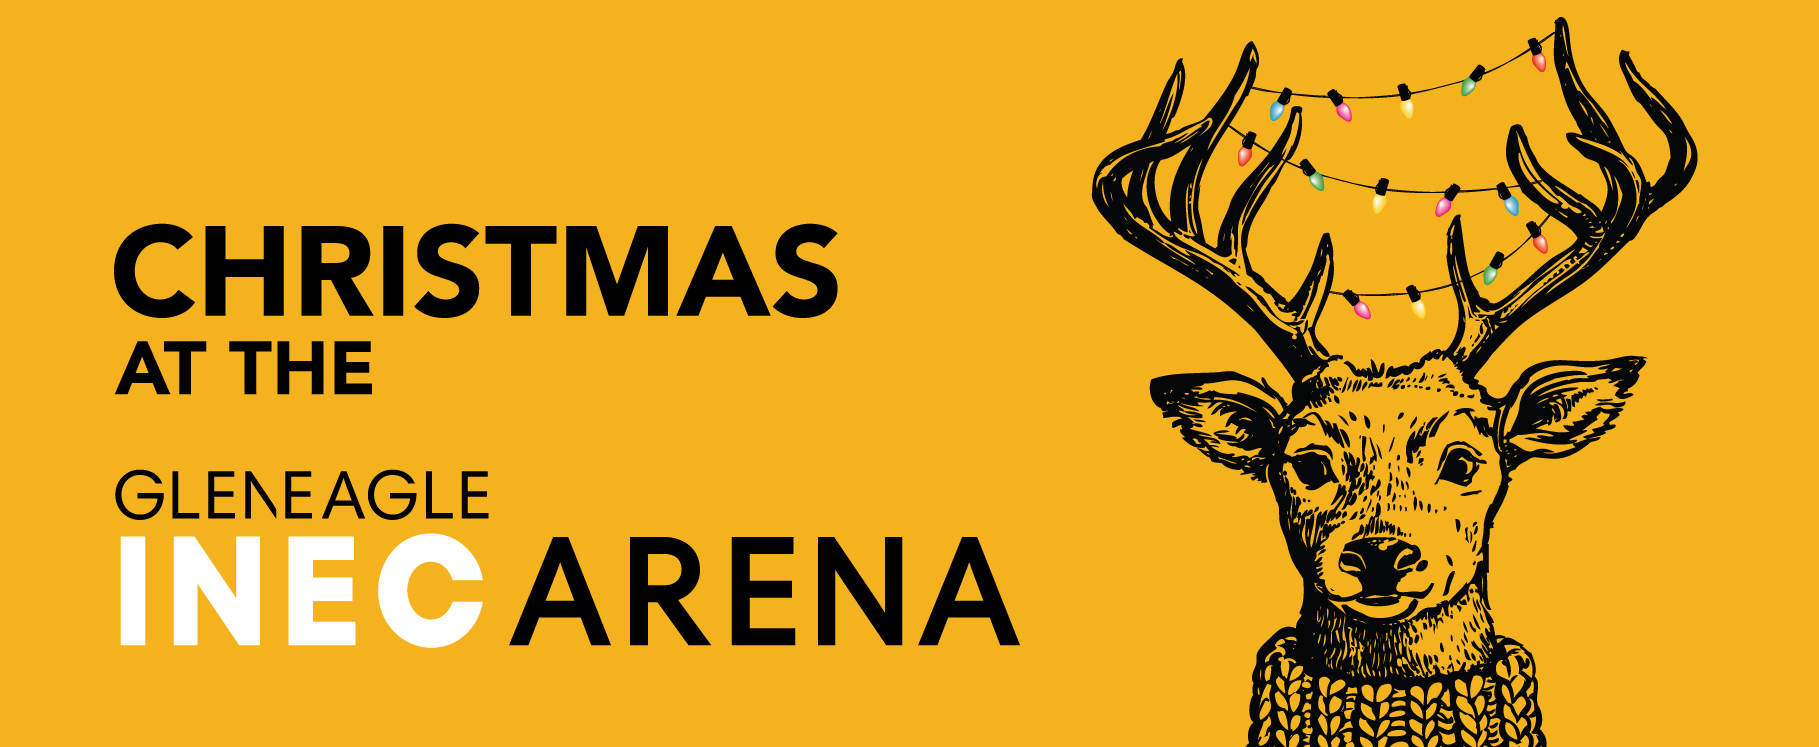 Christmas at the Gleneagle INEC Arena